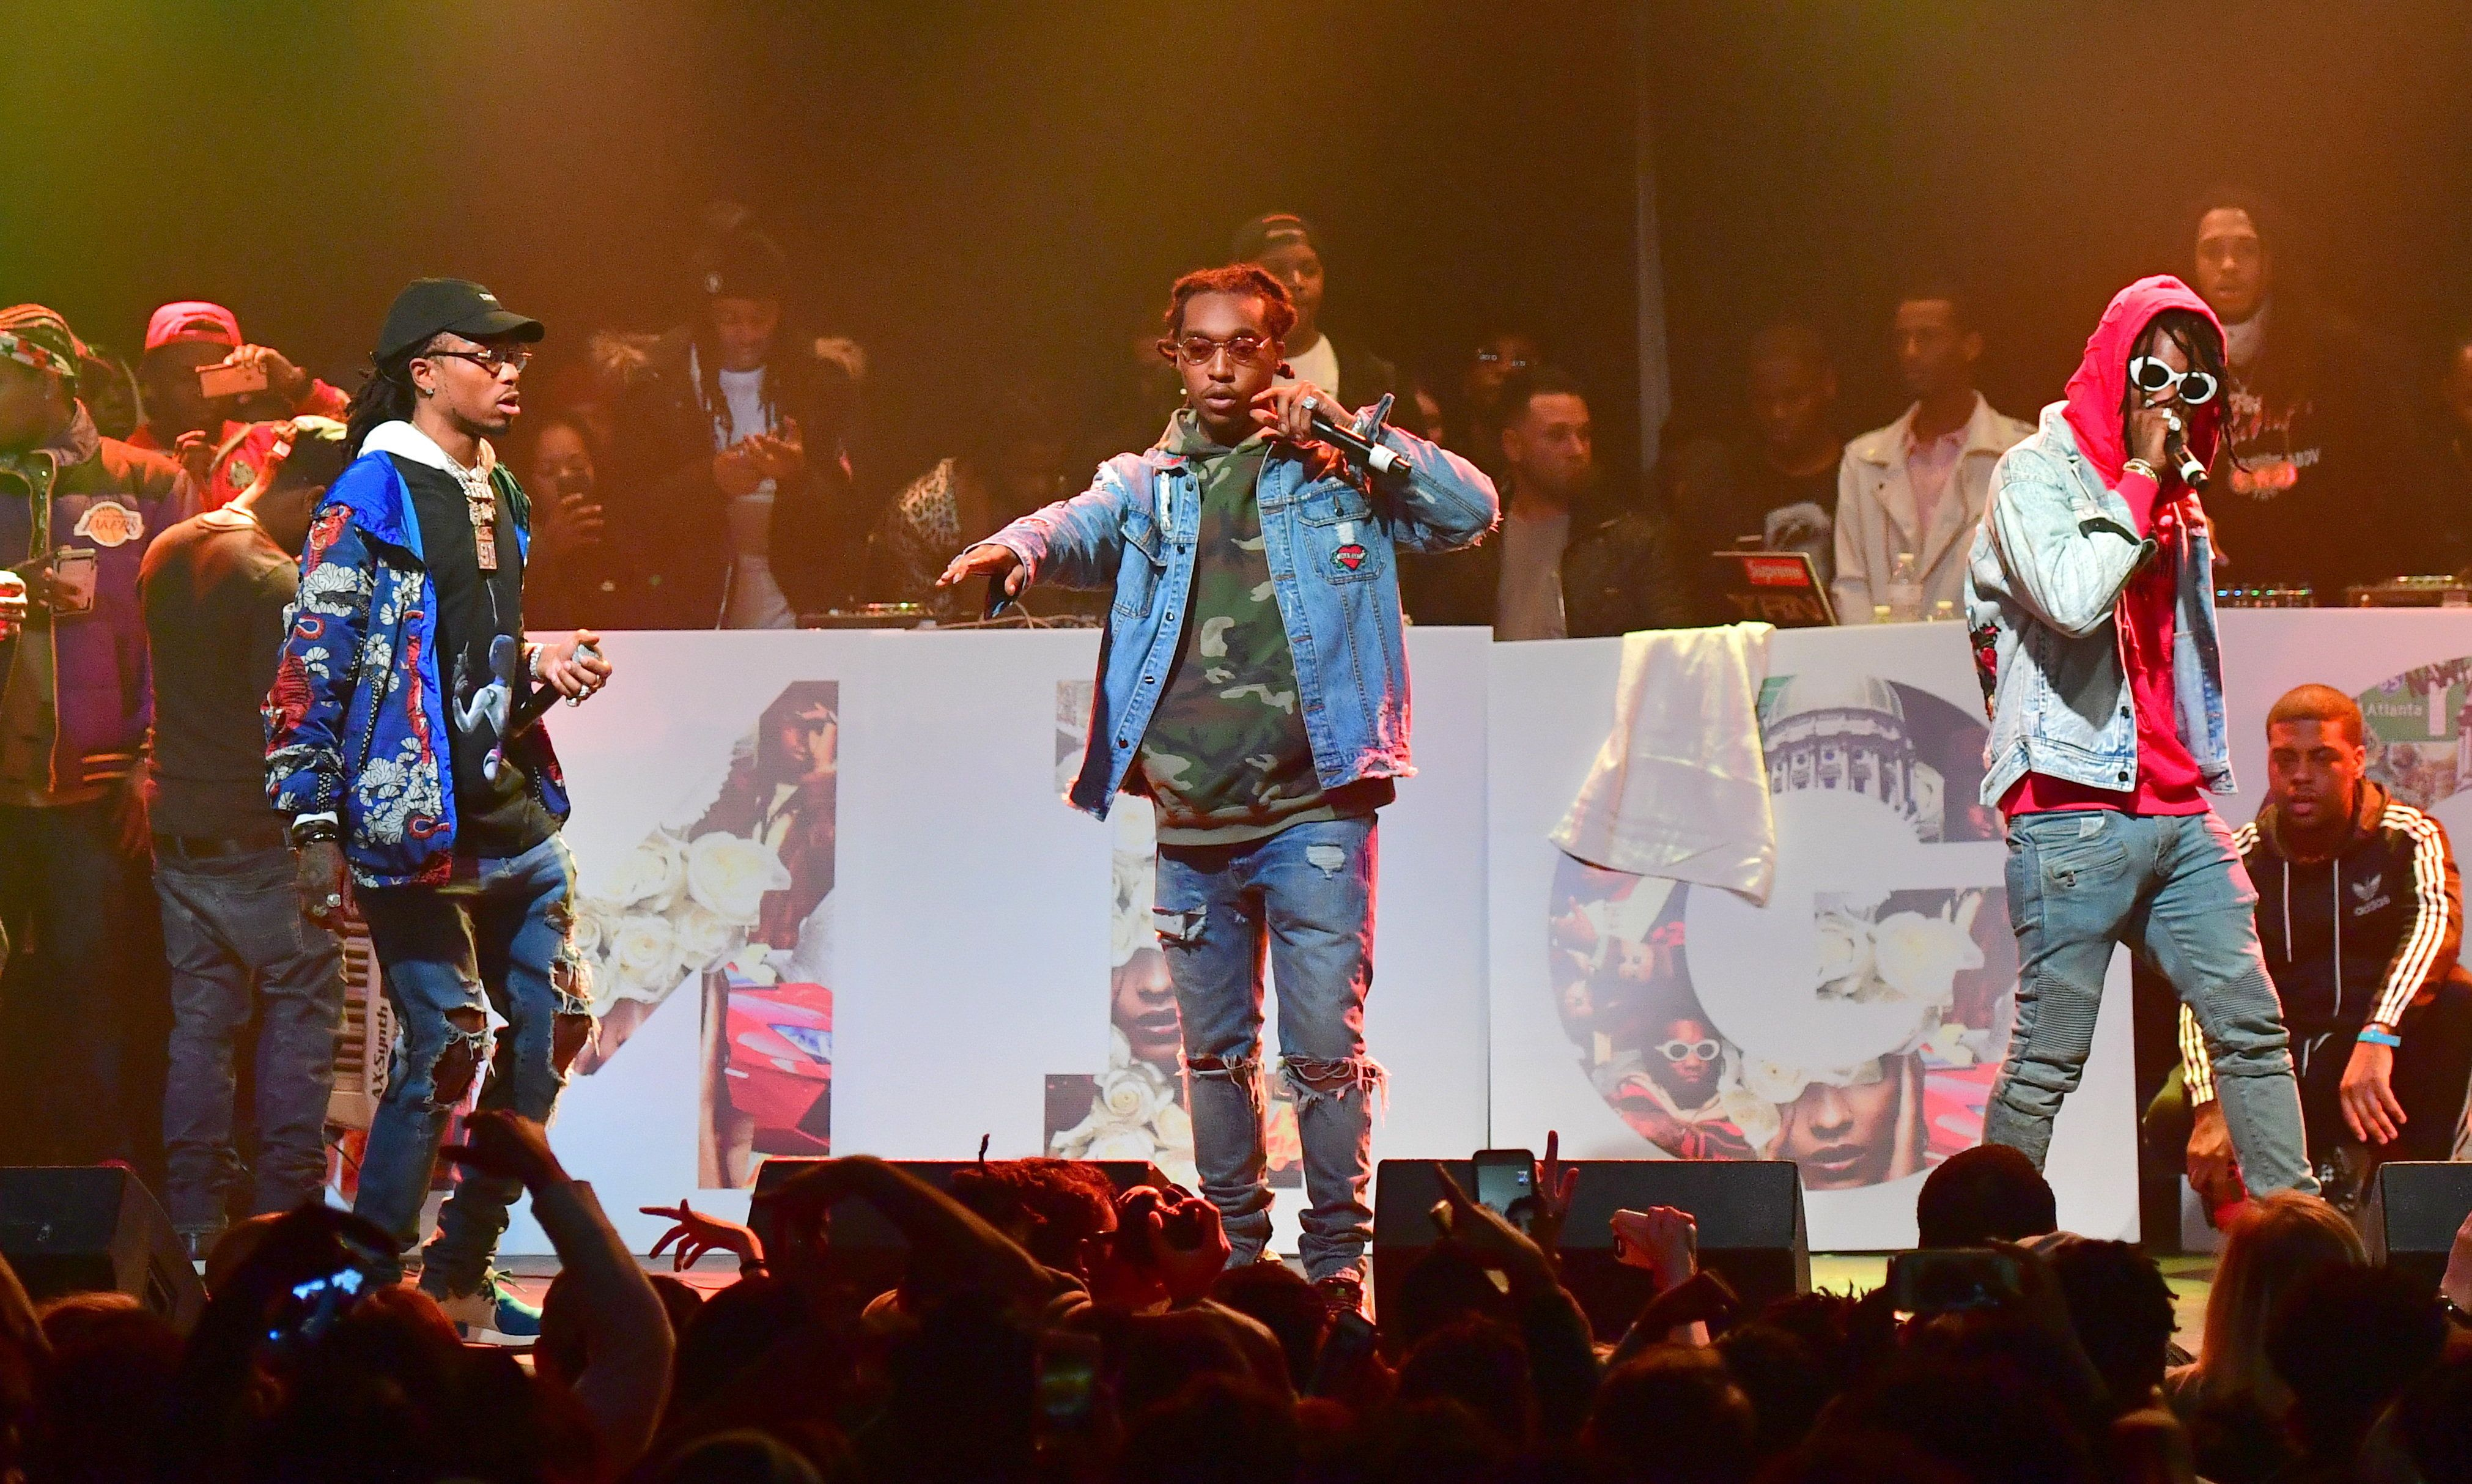 ATLANTA, GA- JANUARY 28: The Migos Perform at the Migos In Concert at Center Stage on January 28, 2017 in Atlanta, Georgia.(Photo By Prince Williams/Wireimage)